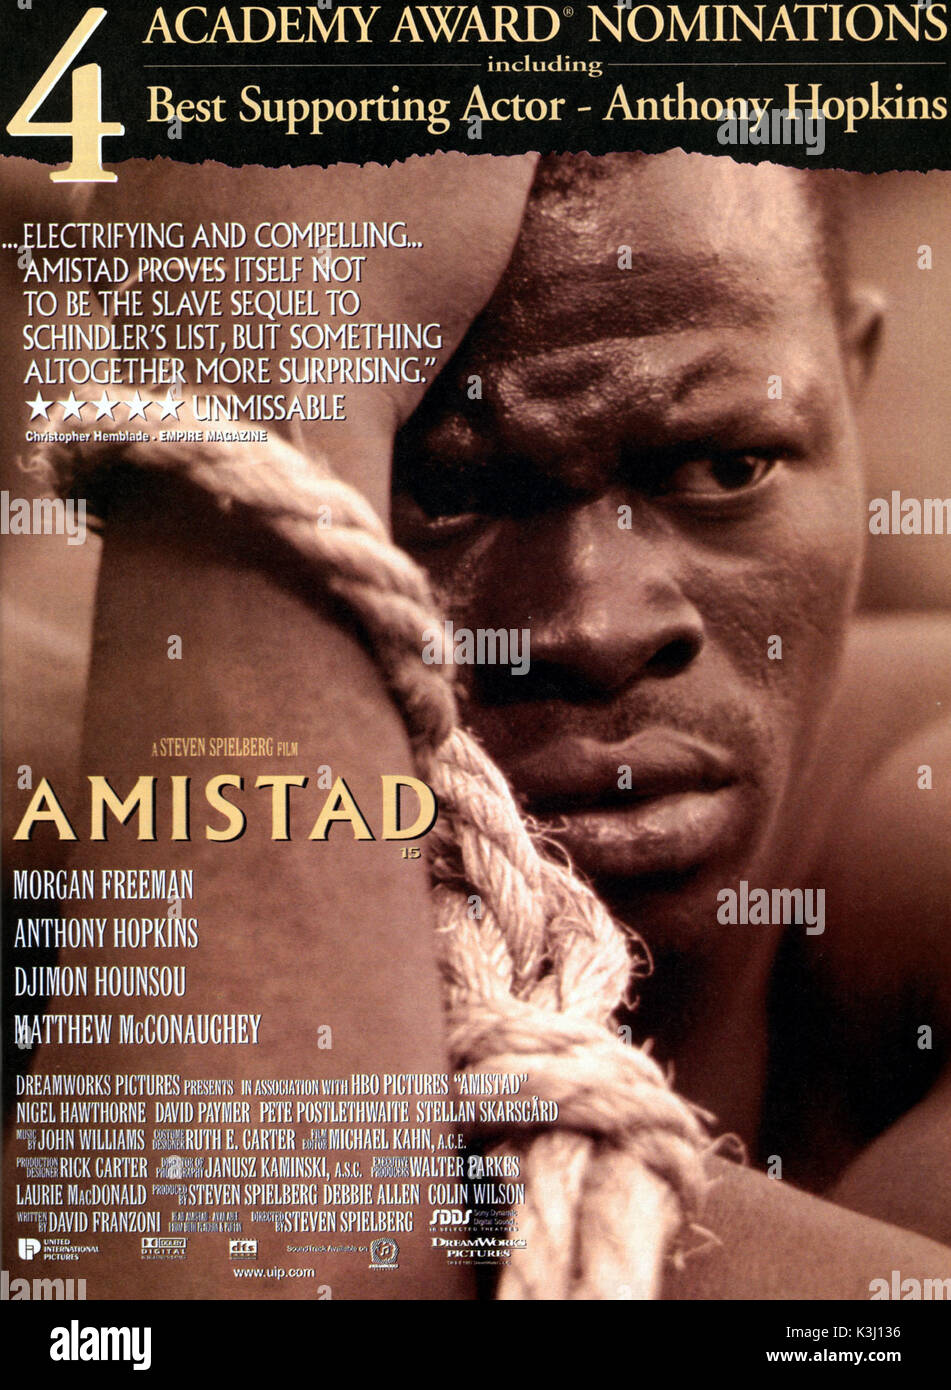 amistad movie